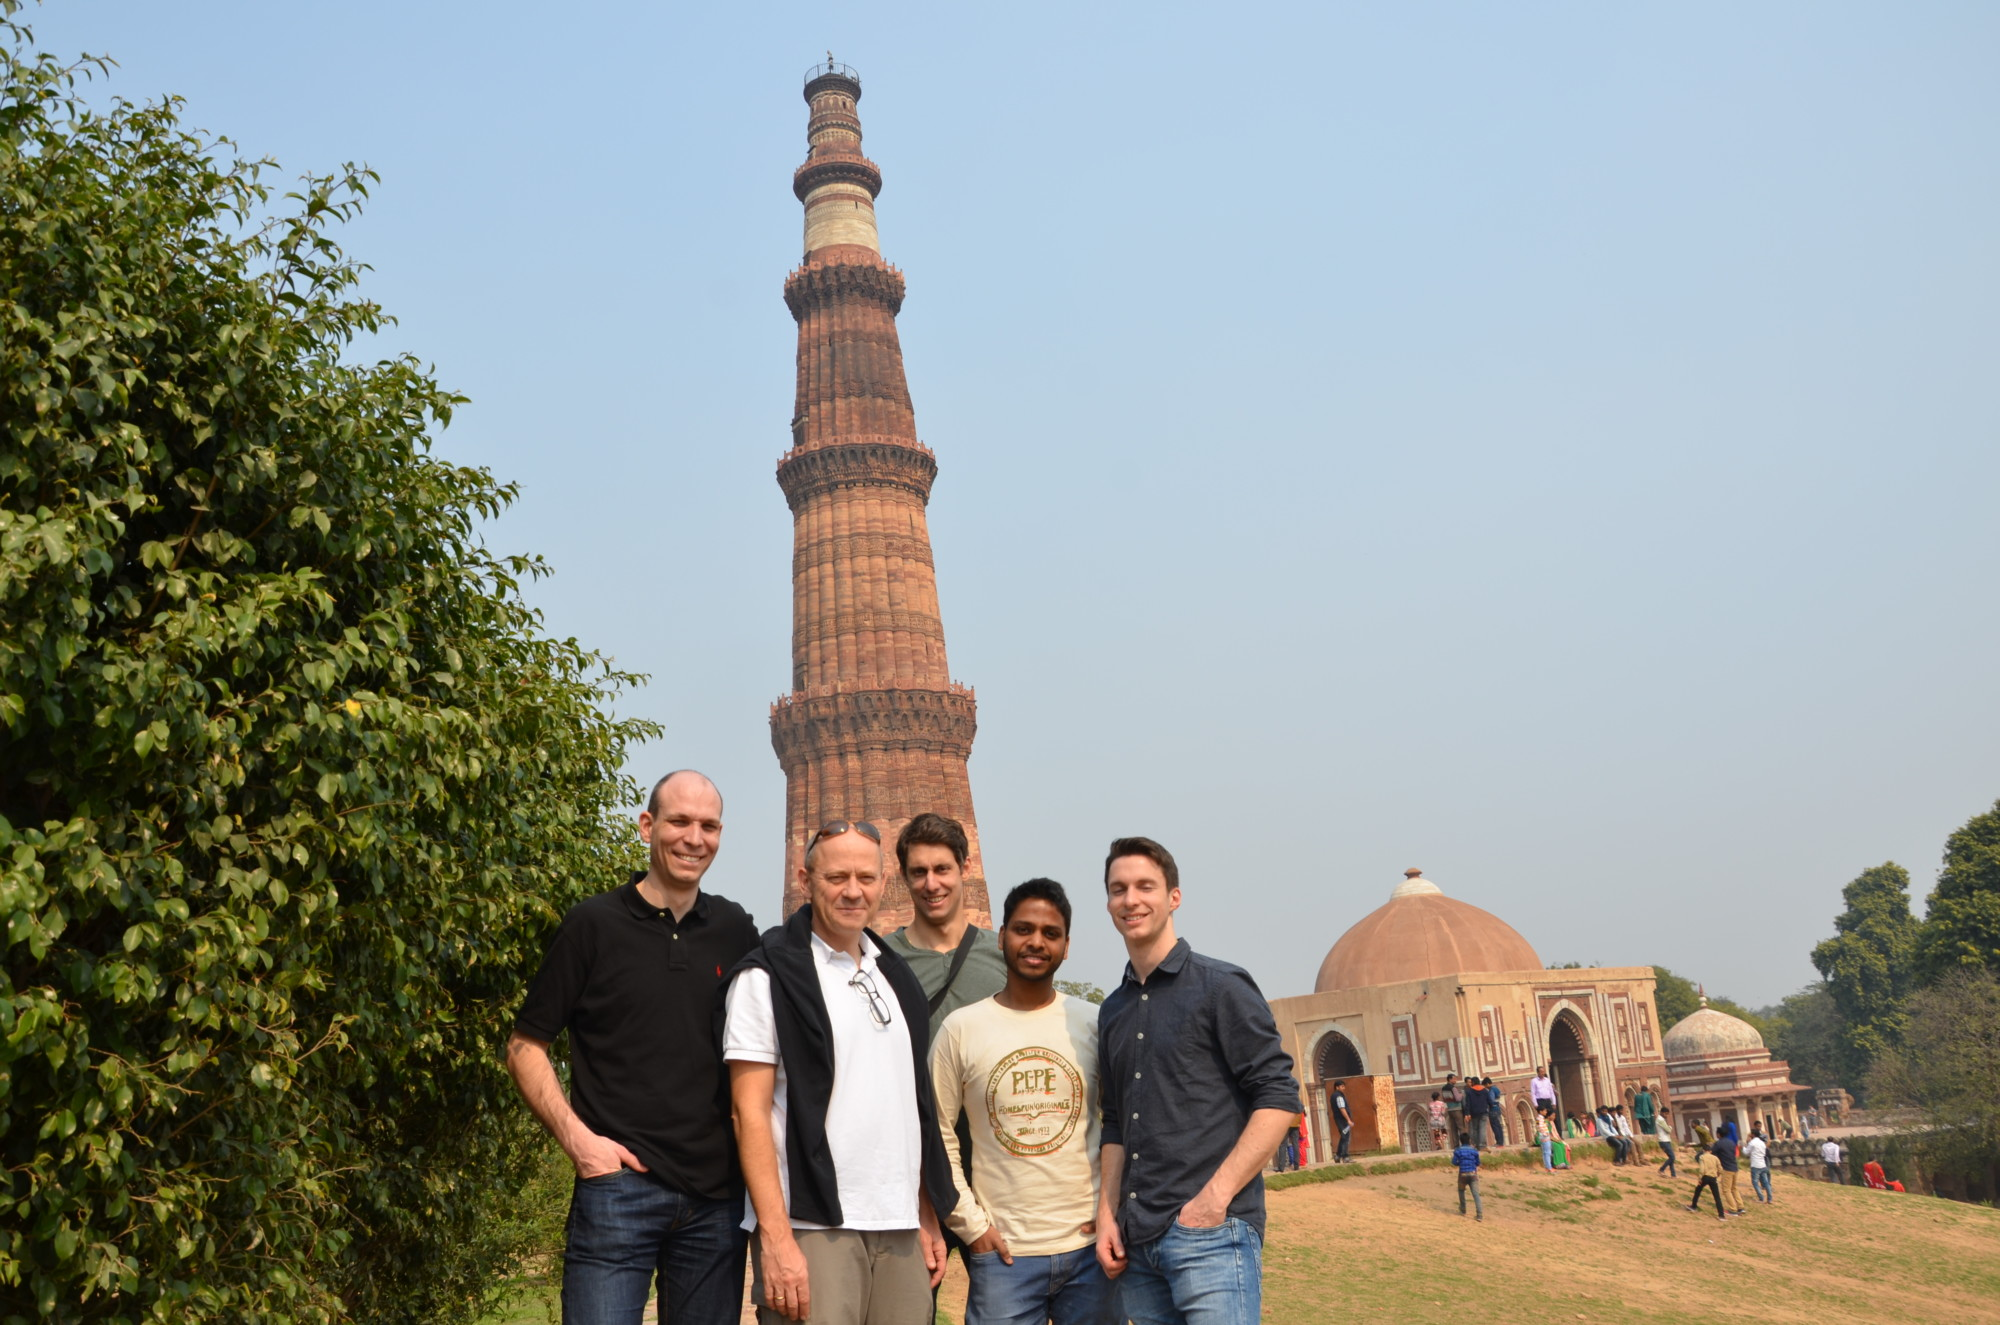 Group photo of five researchers from the technical faculties at Friedrich-Alexander-Universität Erlangen-Nürnberg and the Indian Institute of Technology Delhi visiting Qutb Minar.